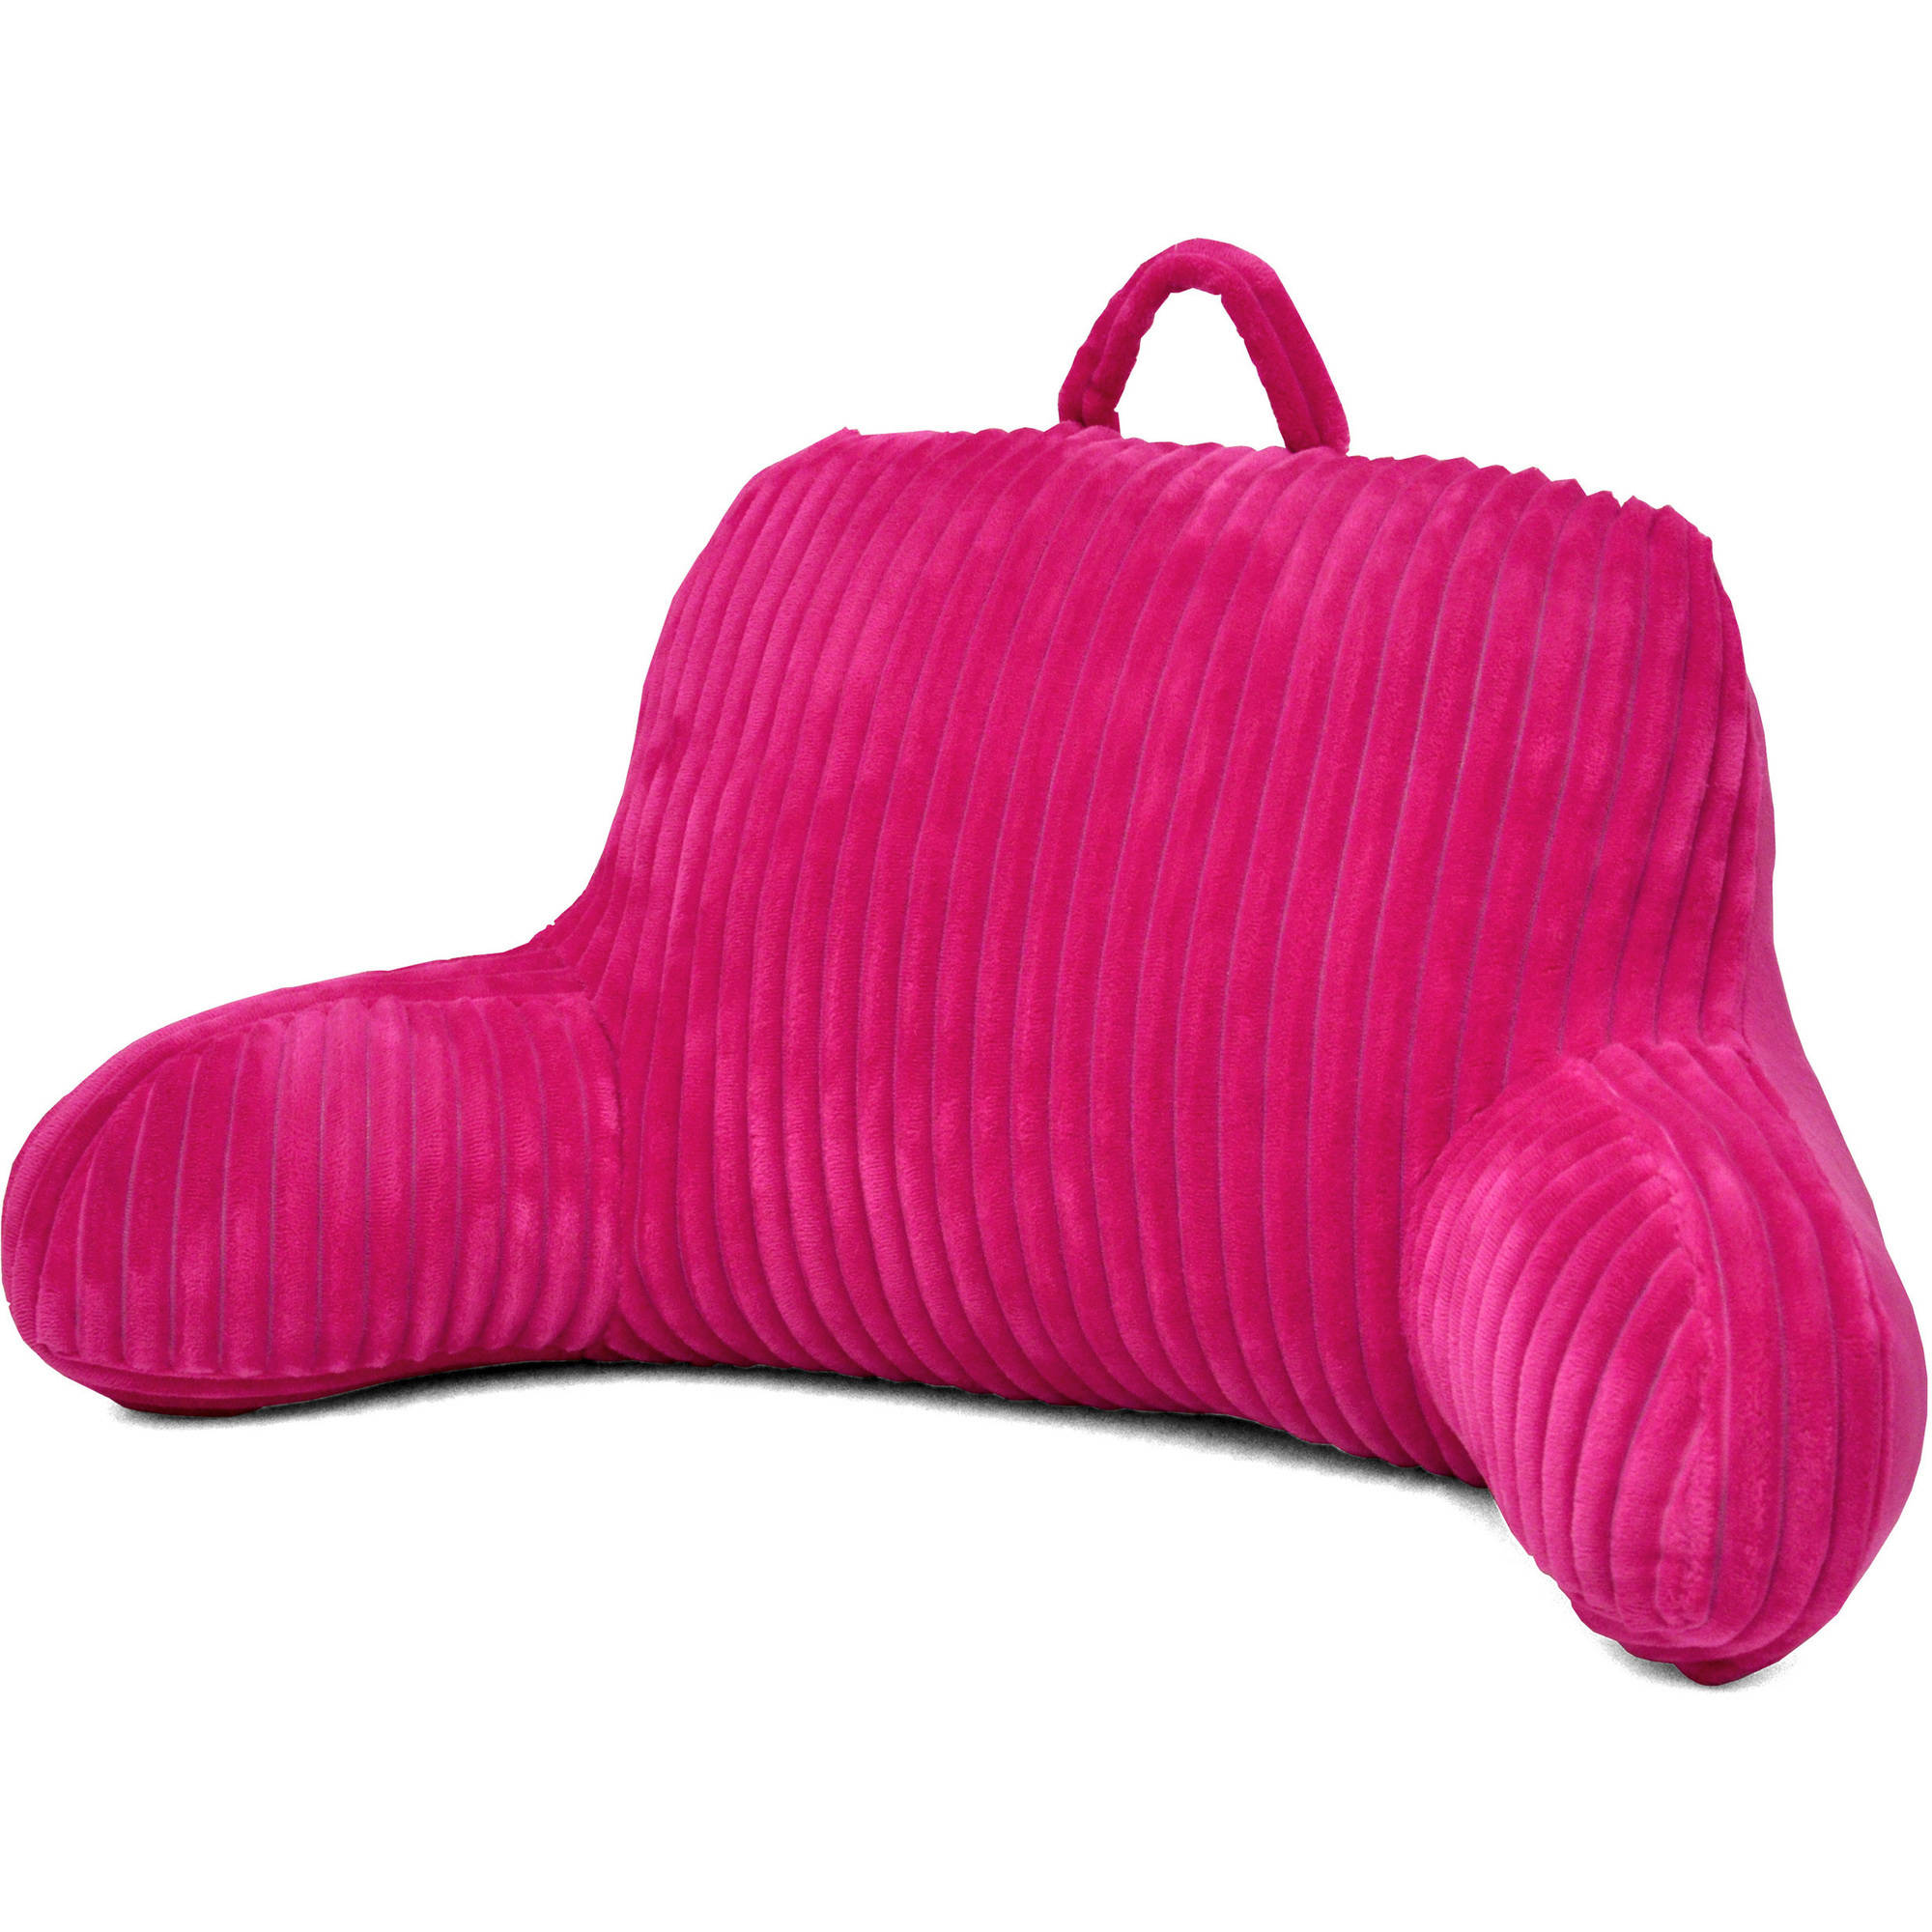 Formula Wide Wale Rev to Micromink Backrest Pillow